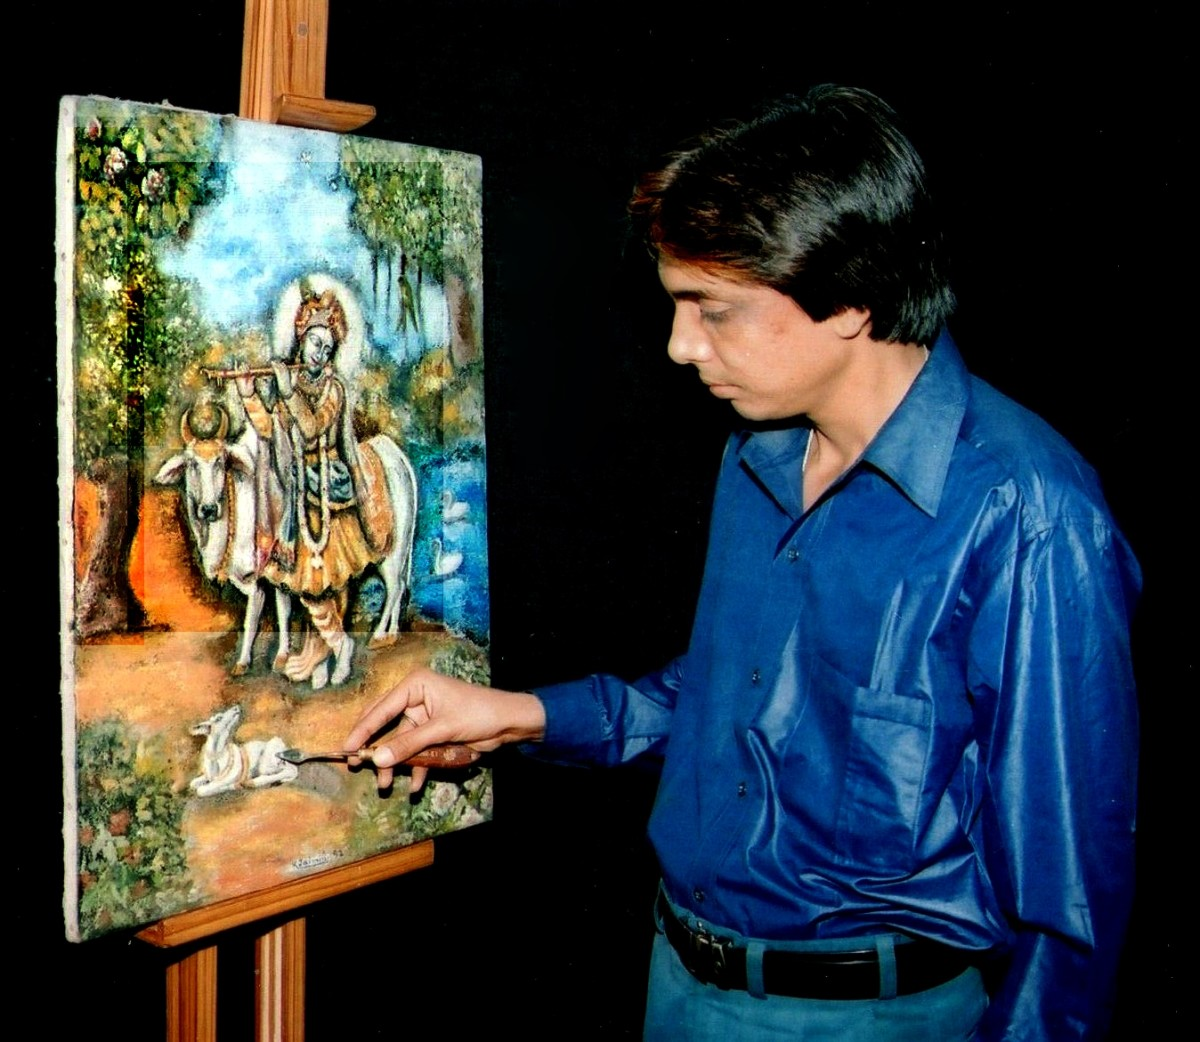 Kamal's devotion as he adds knife stroke to his painting each day for over six months